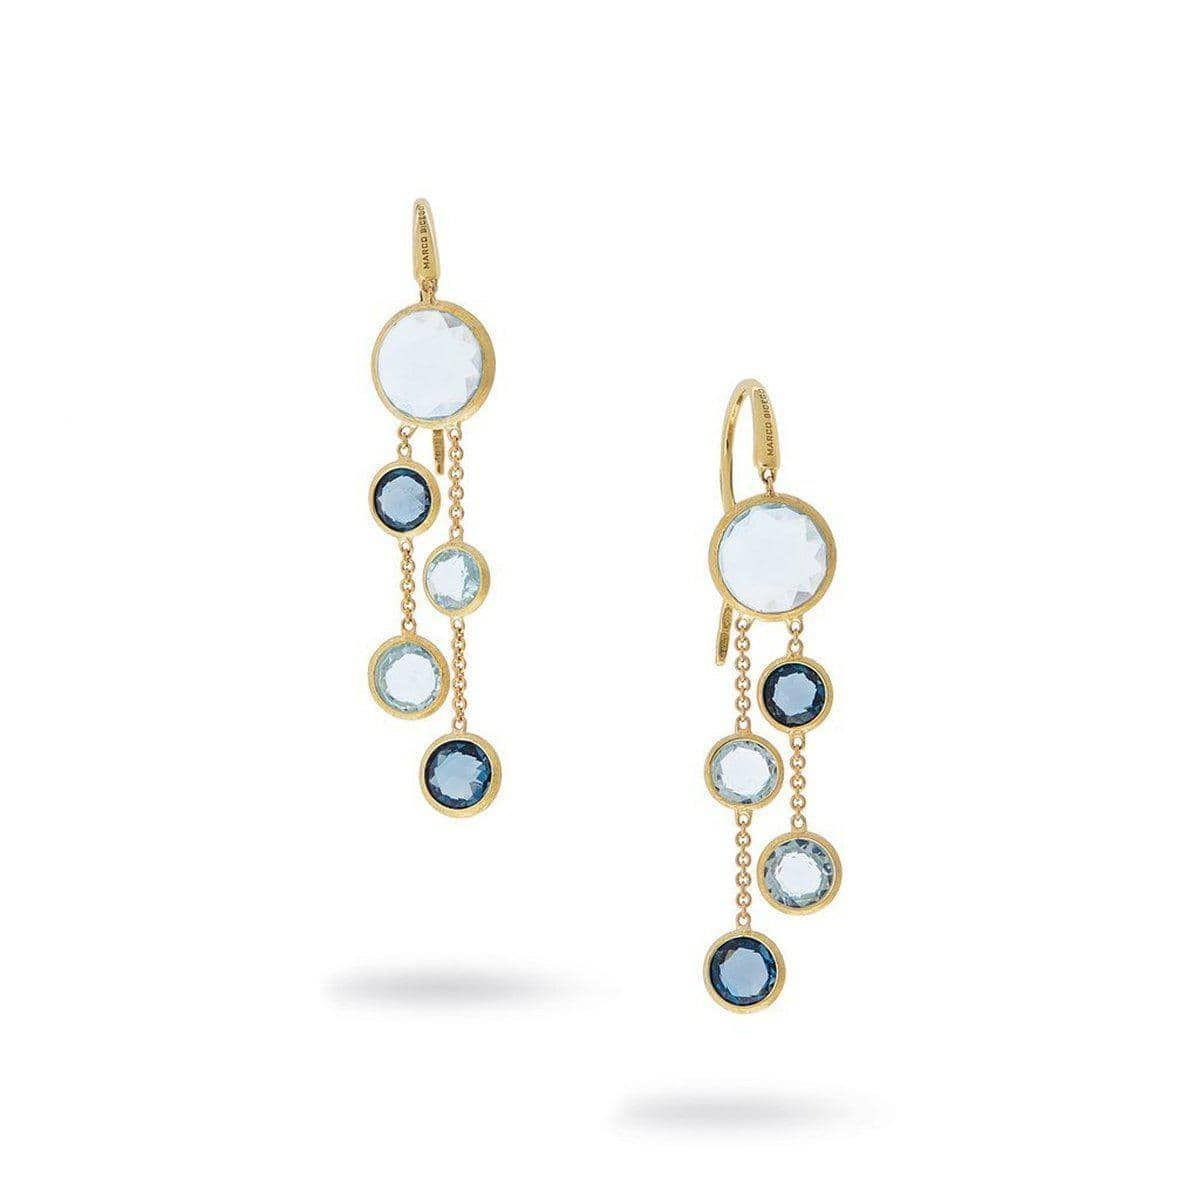 18K Jaipur Mixed Blue Topaz Earrings - OB1290 MIX725 Y-Marco Bicego-Renee Taylor Gallery